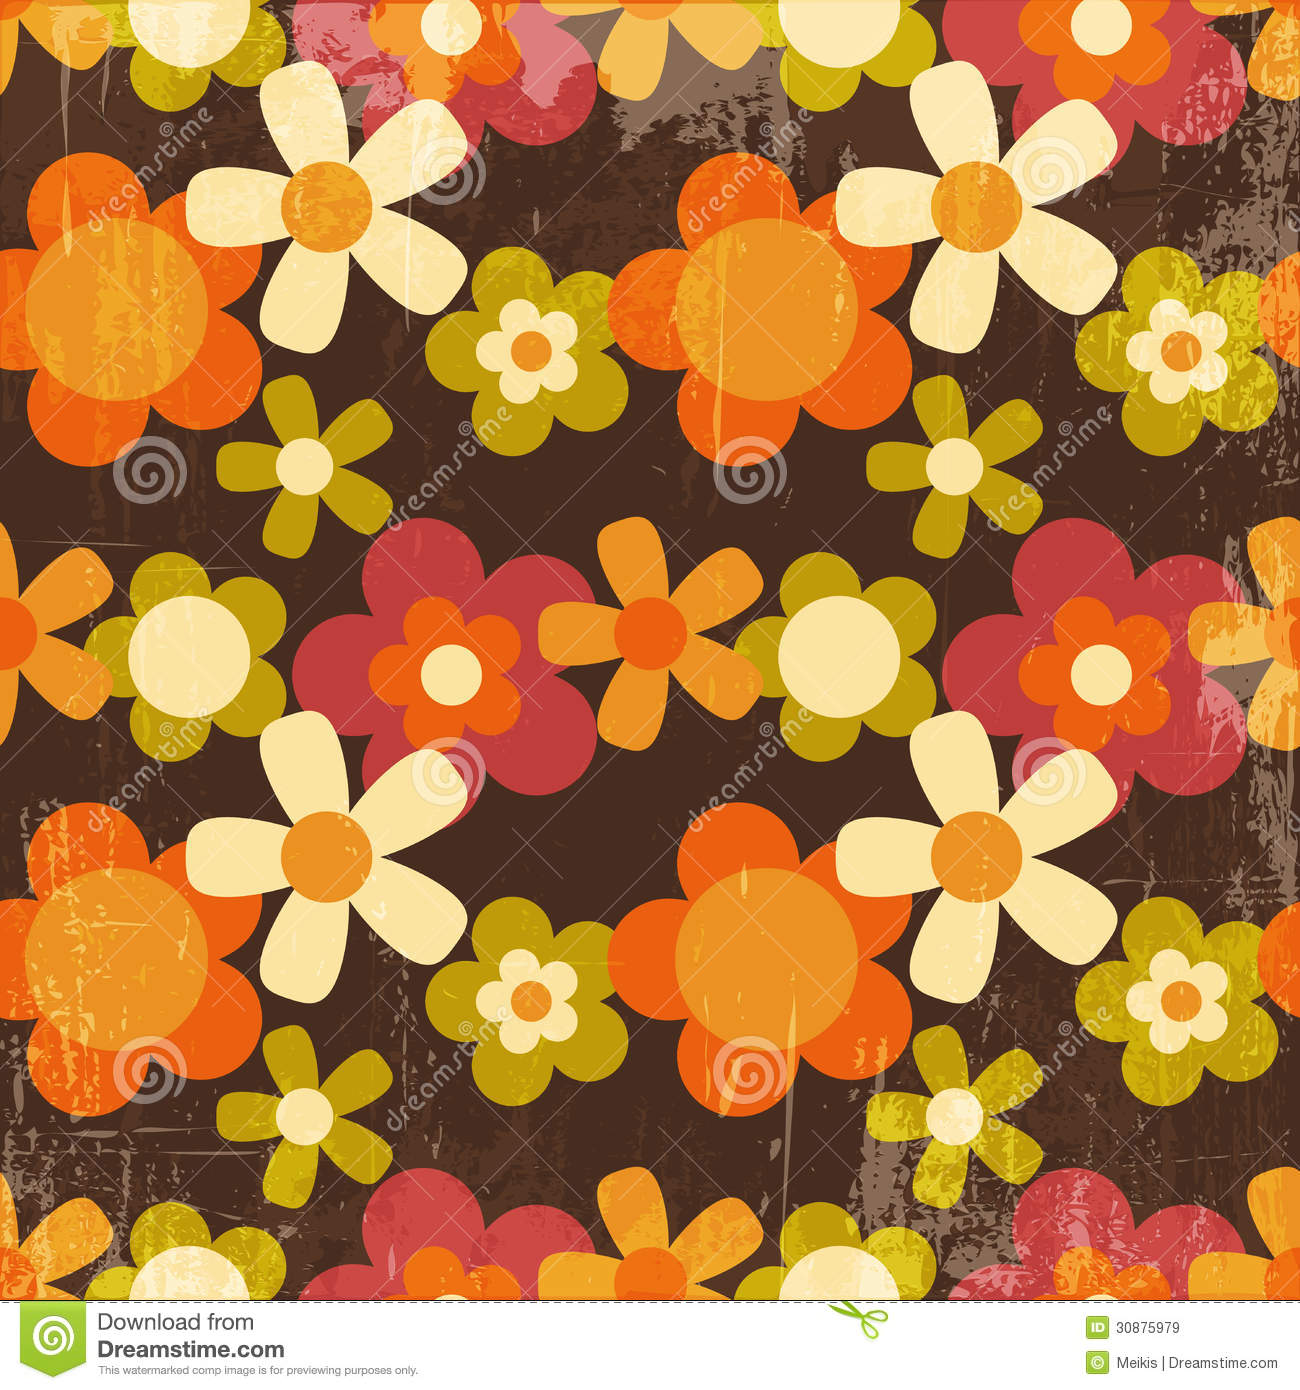 Retro Style Colorful Flower Seamless Pattern Royalty Free Stock Images ...